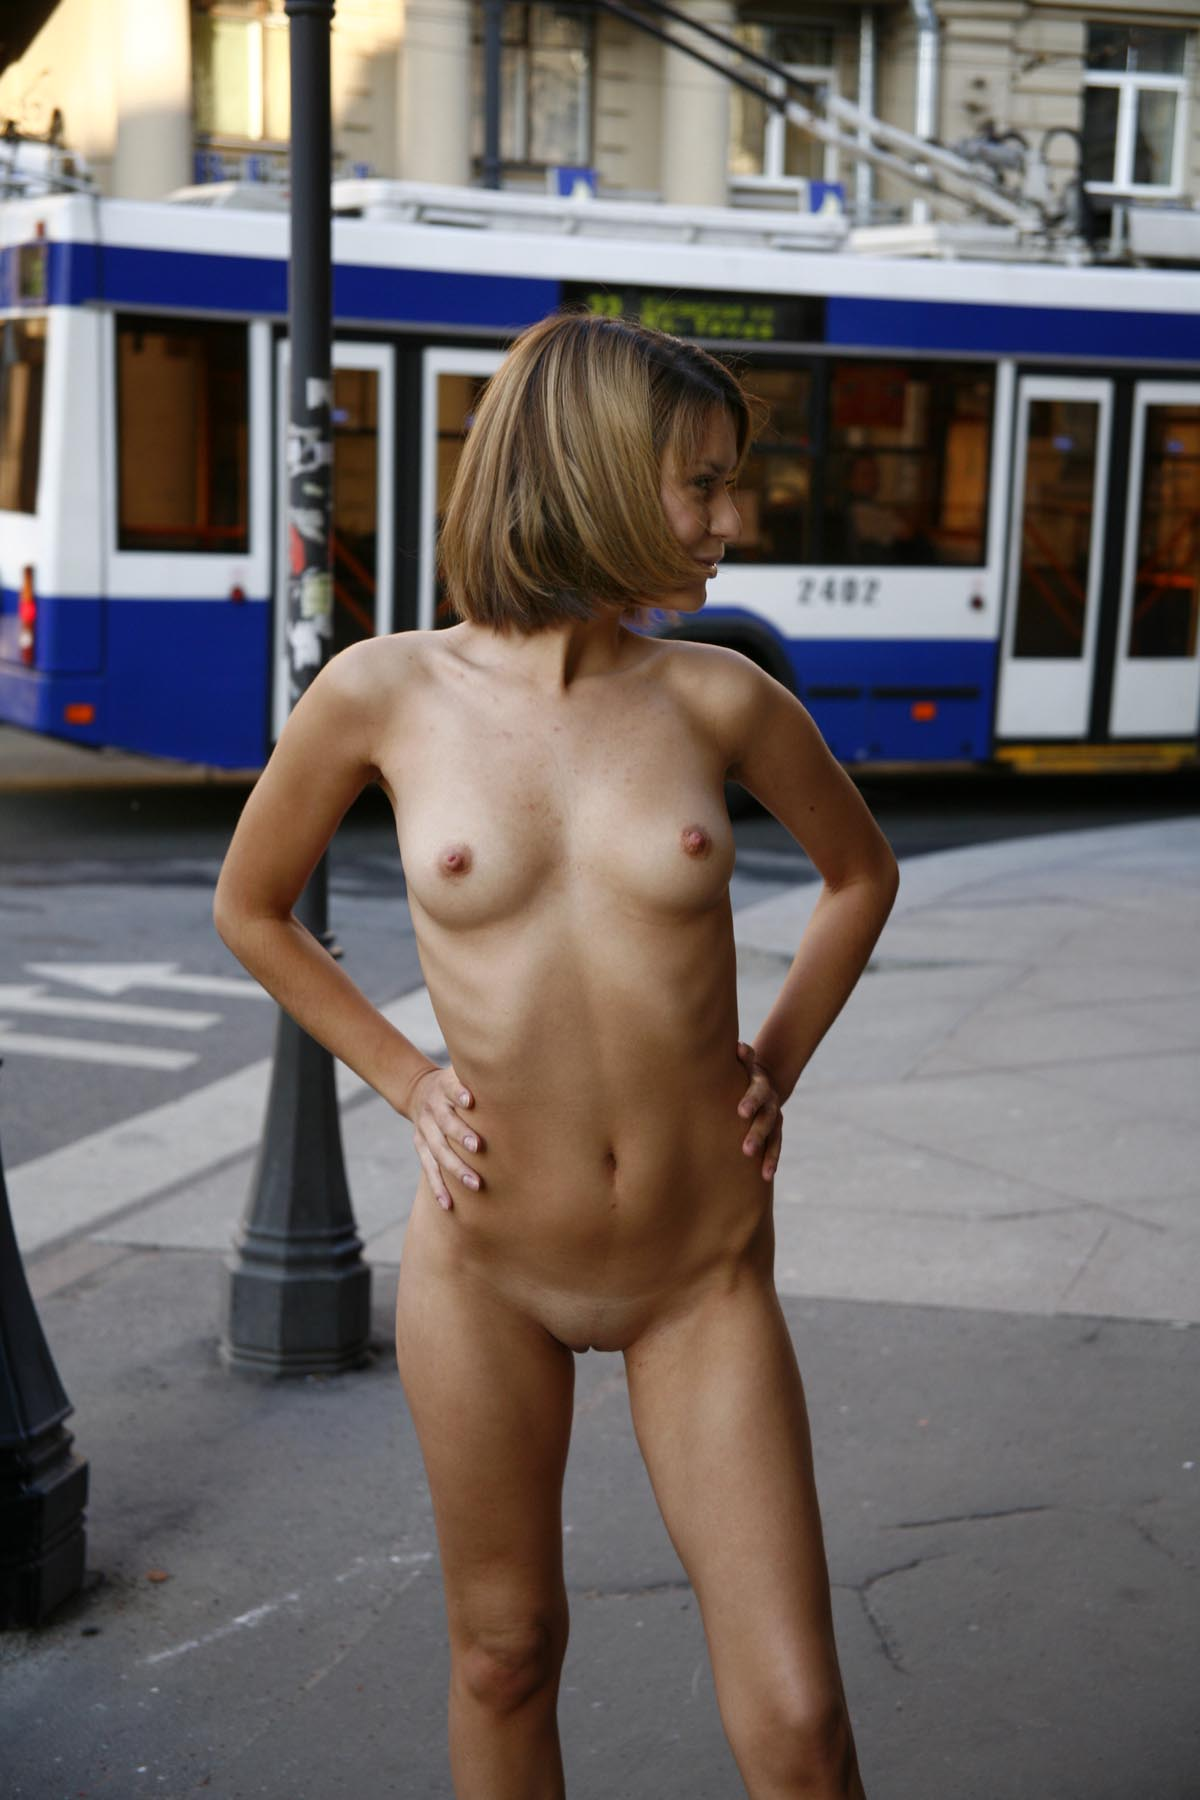 Completely nude girls